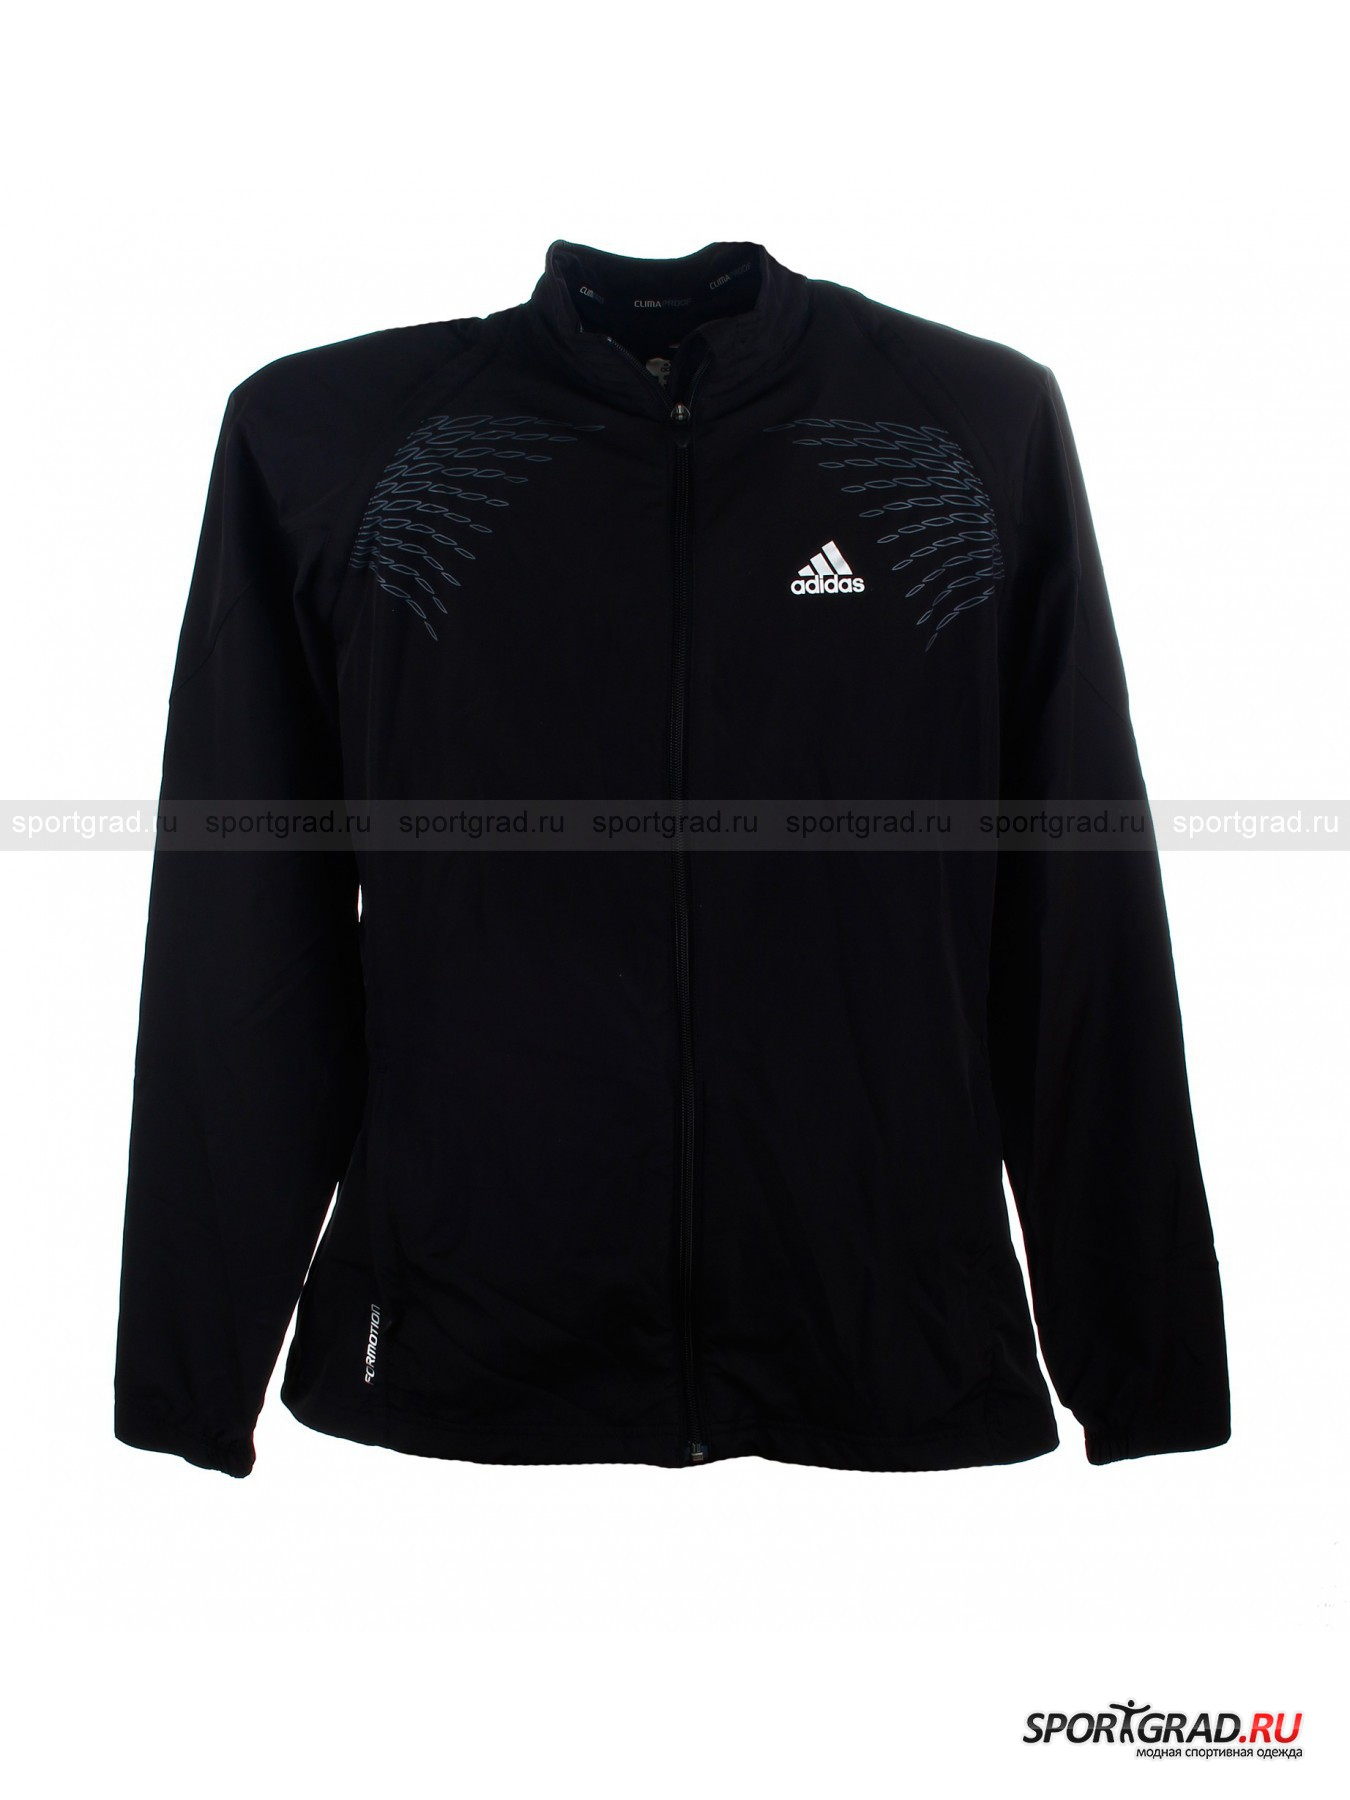 Bетровка муж Supernova Convertible Jacket ADIDAS